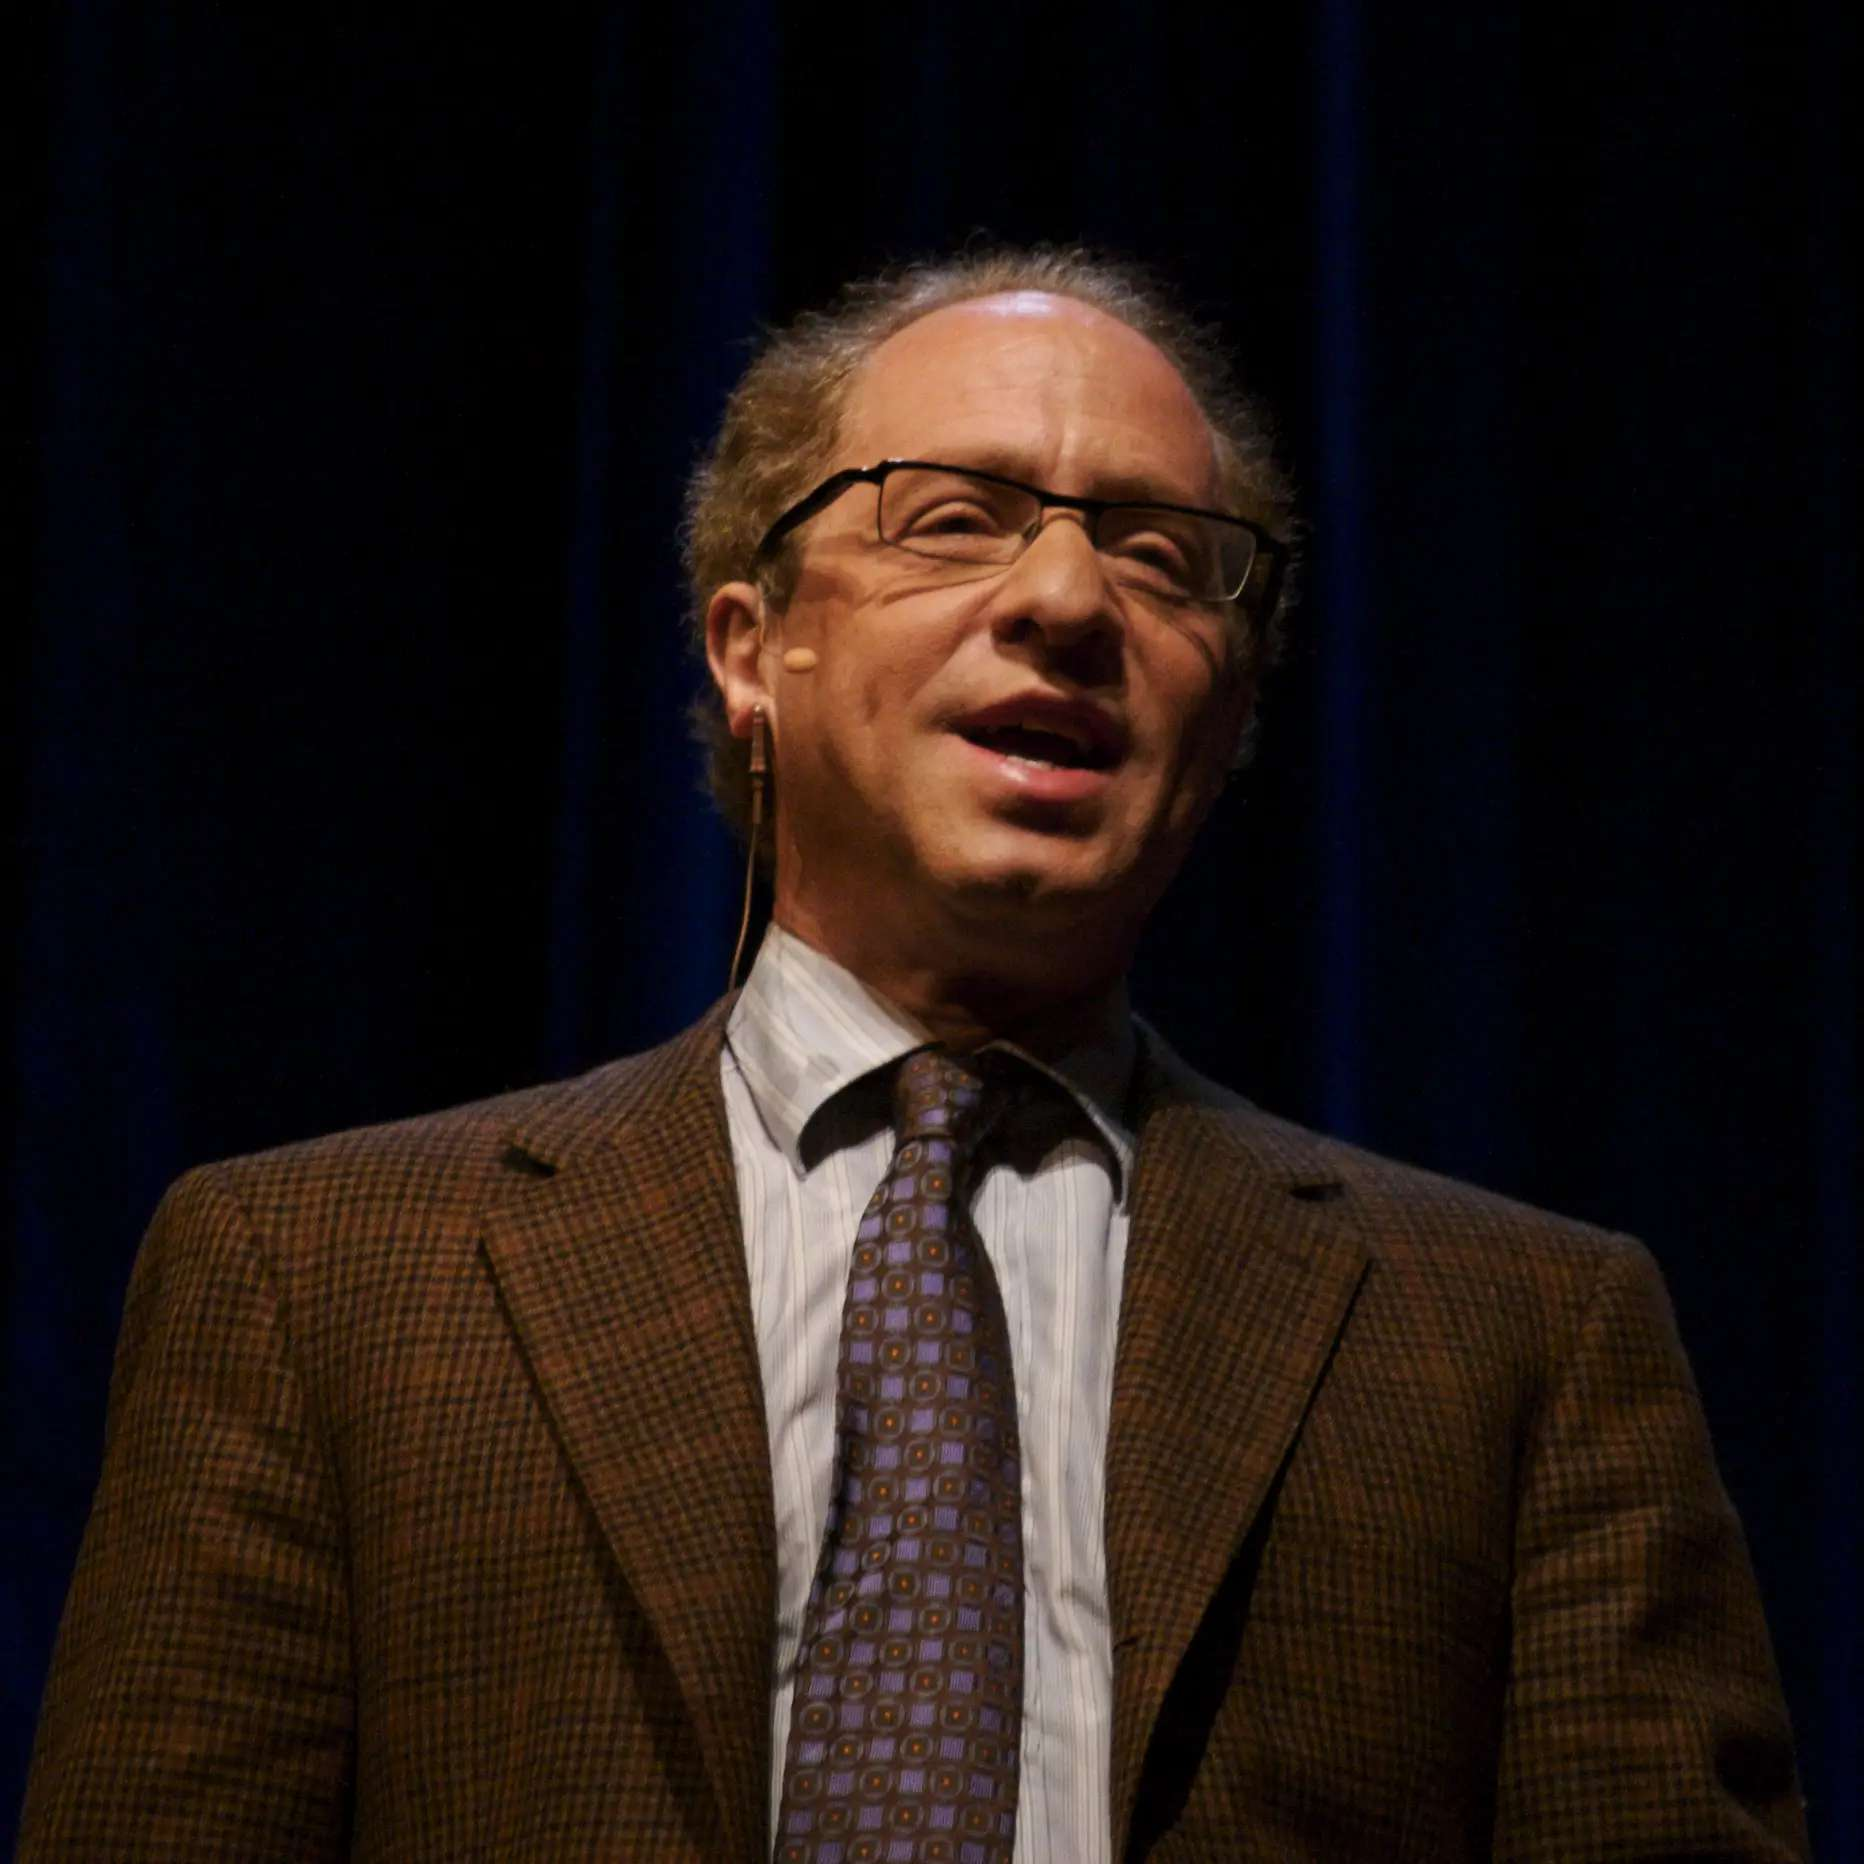 """Raymond Kurzweil, Director of Engineering at Google and noted futurist, made a number of predictions about what technology would be like in 2009 in """"The Age of Spiritual Machines,"""" his book from 1999..."""